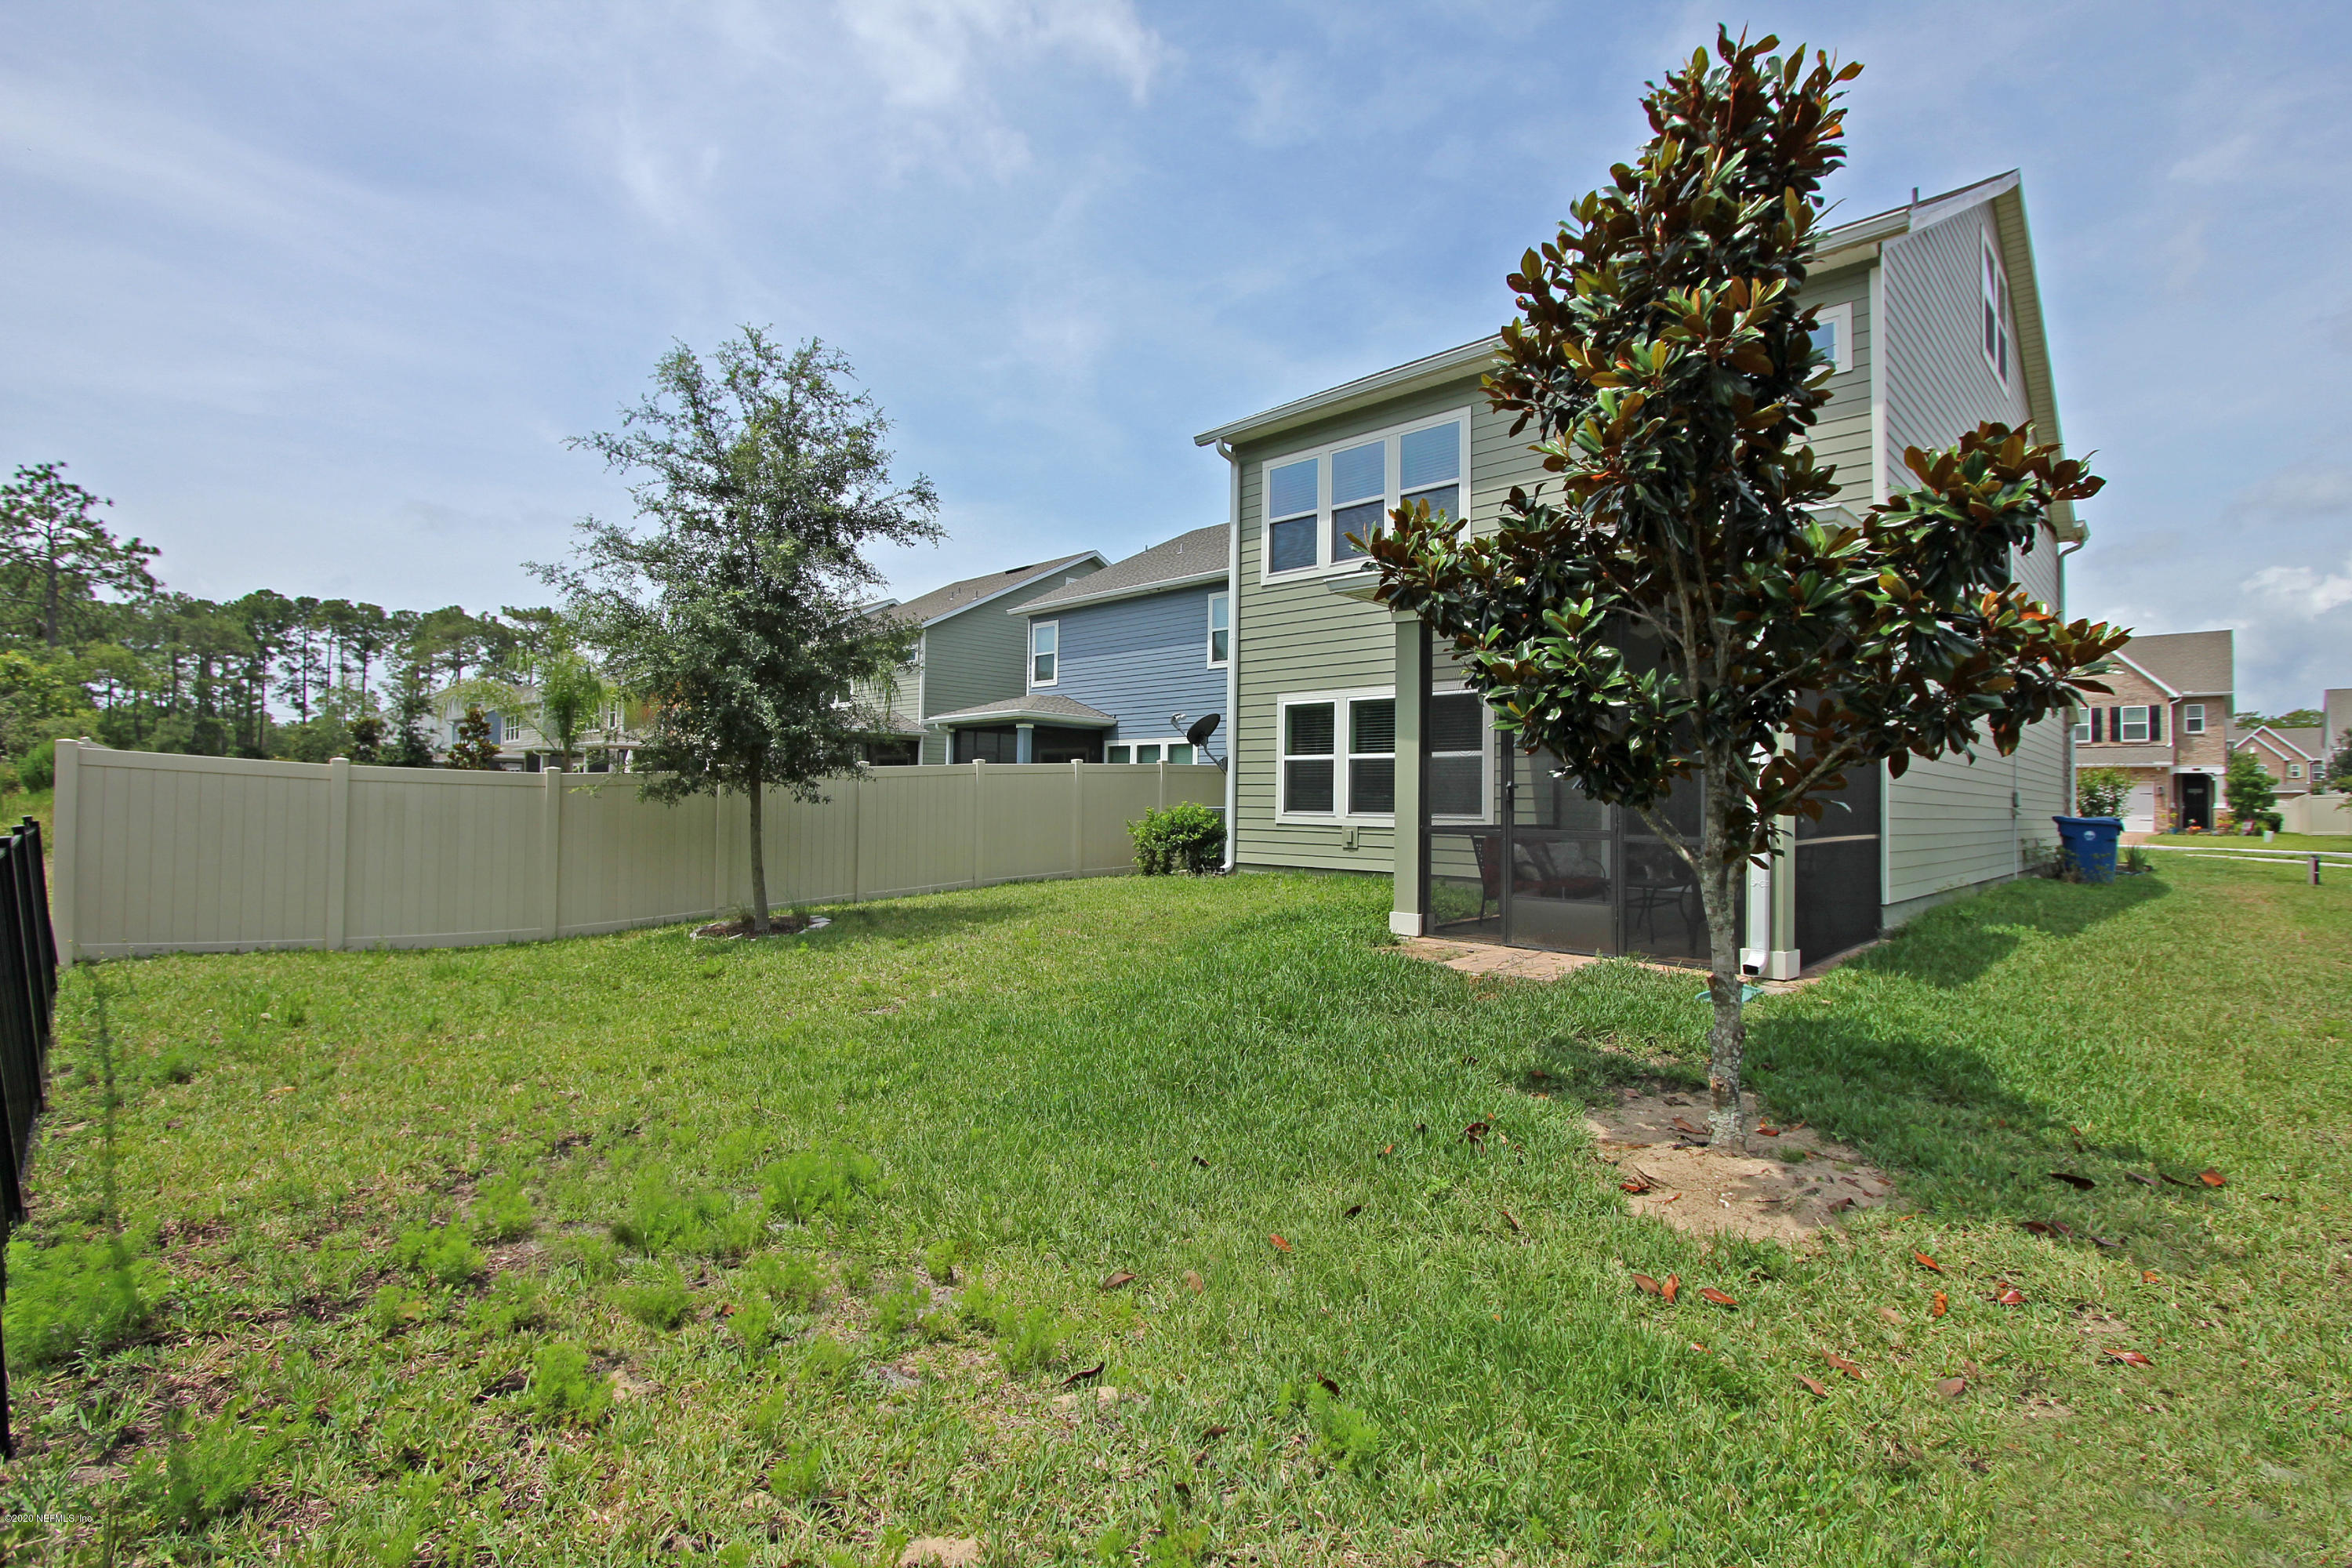 2701 FAWN POINT, JACKSONVILLE, FLORIDA 32225, 3 Bedrooms Bedrooms, ,2 BathroomsBathrooms,Residential,For sale,FAWN POINT,1056212